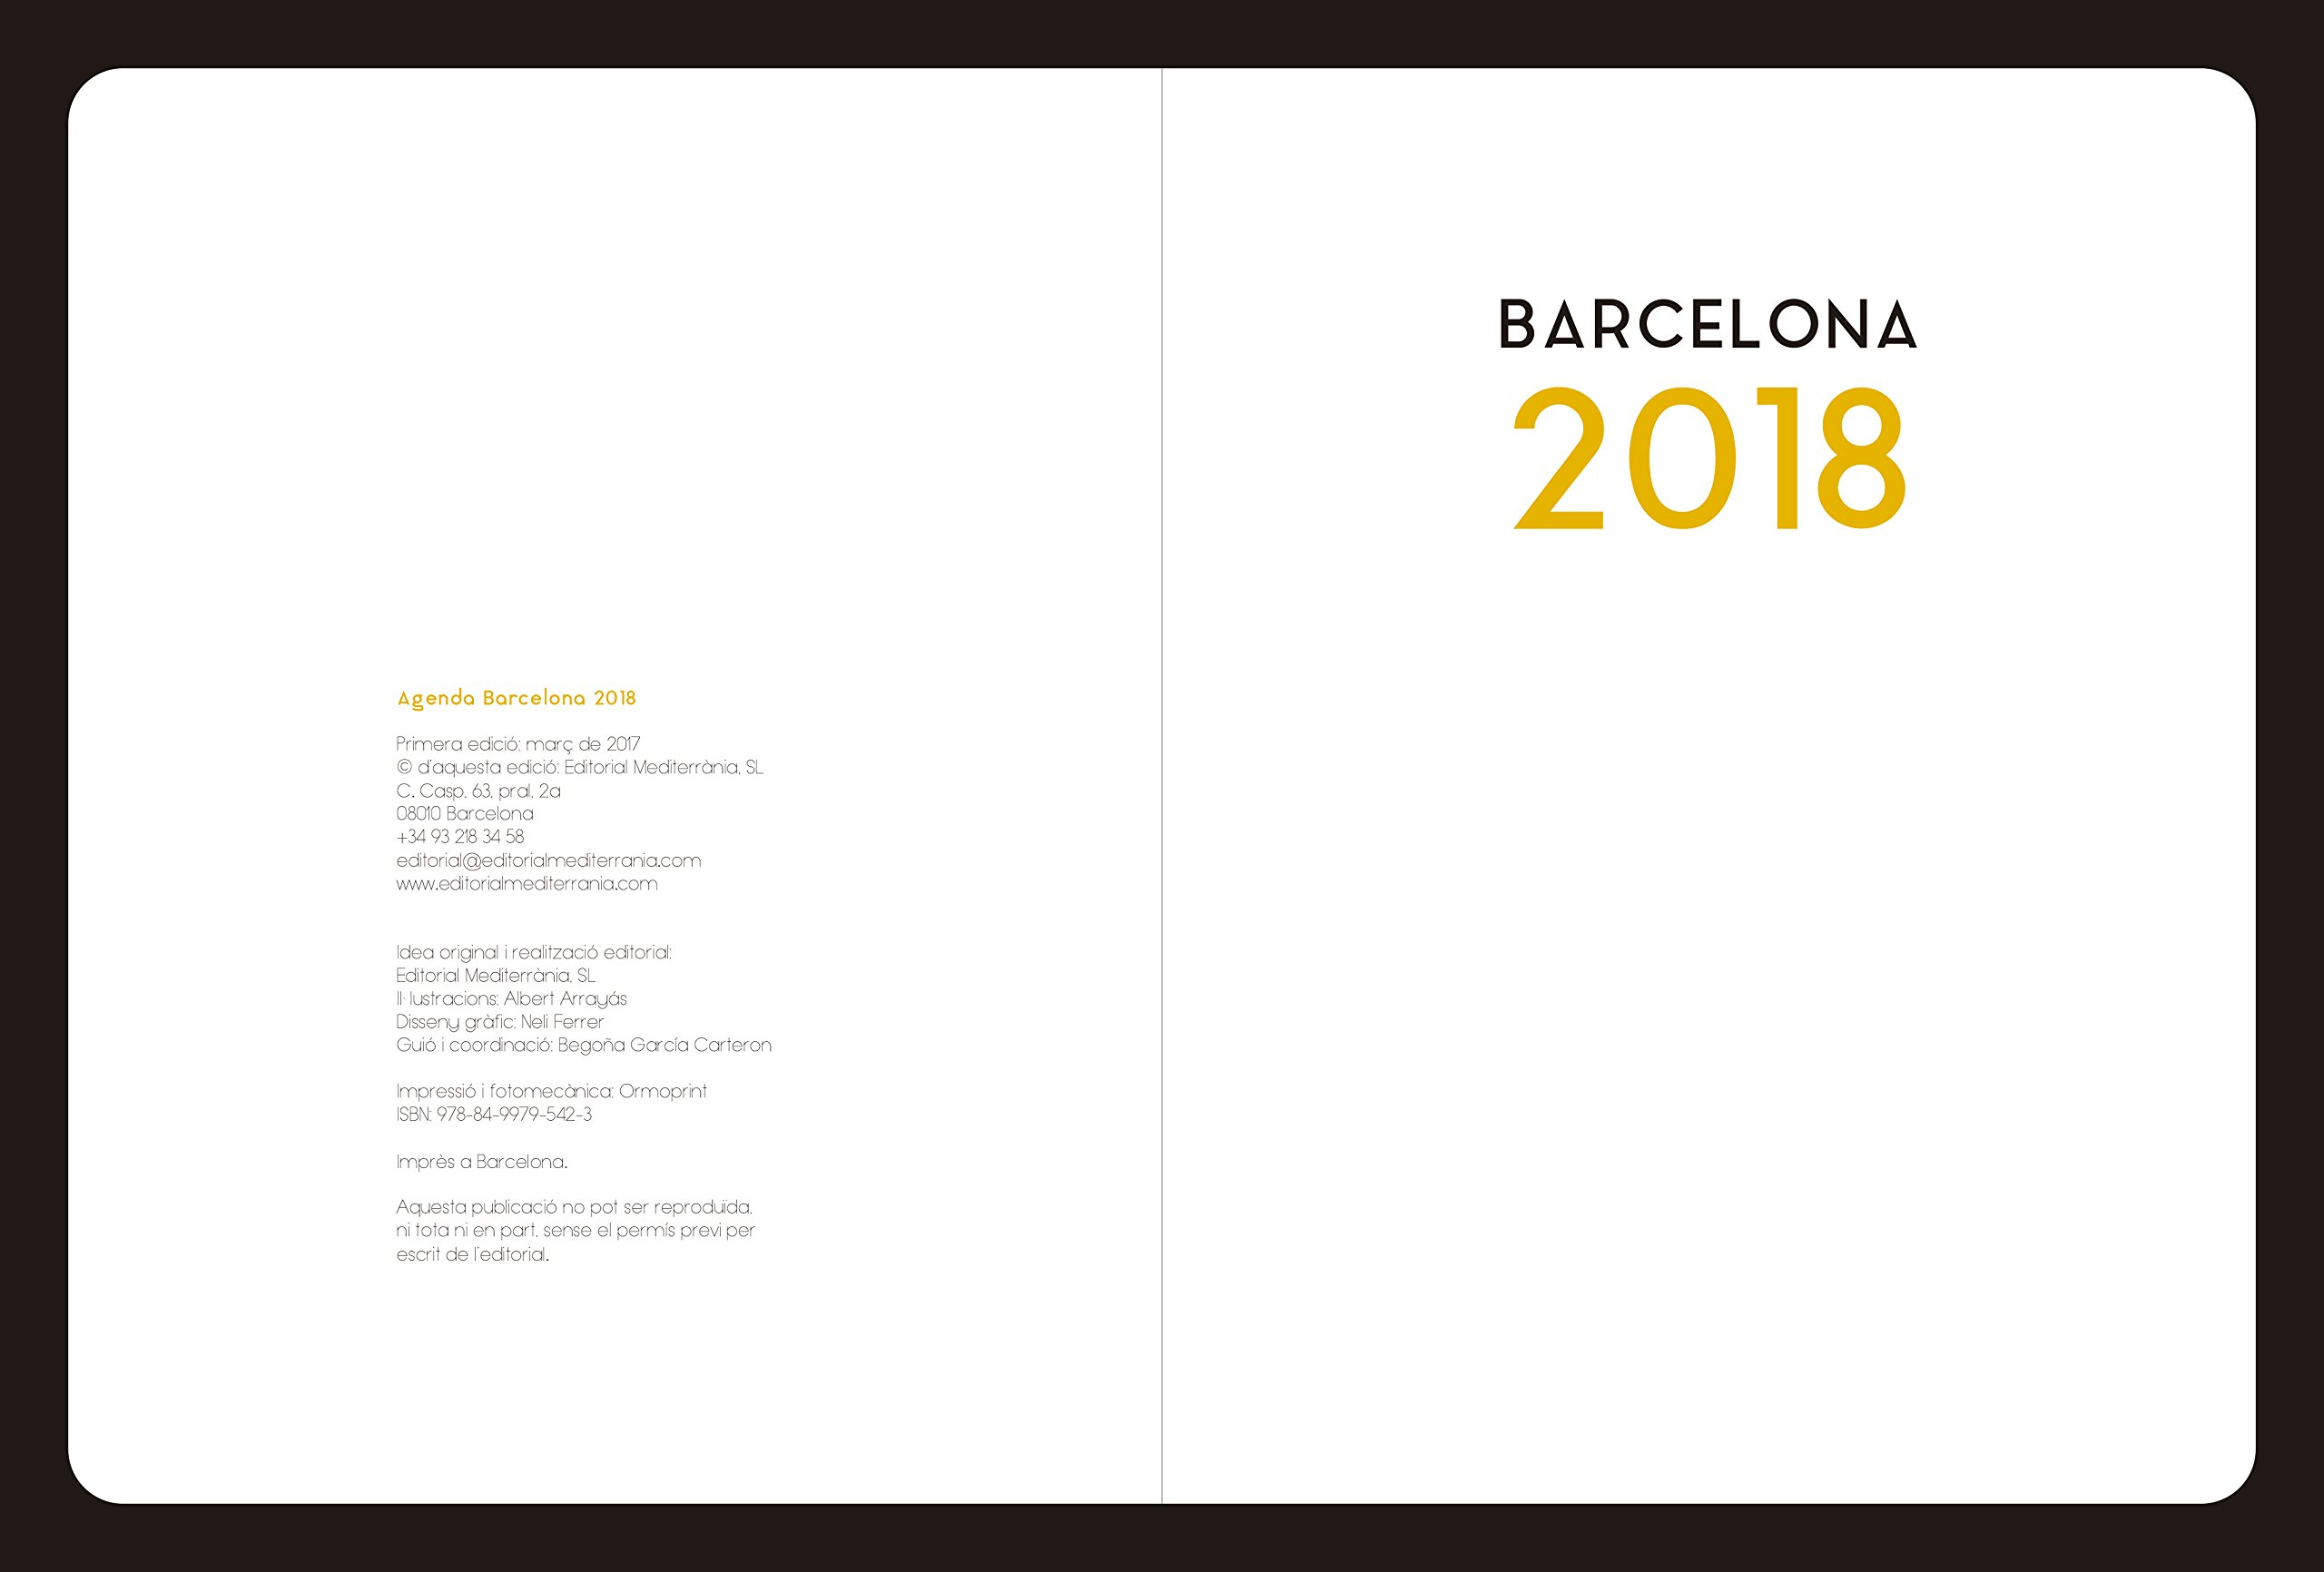 Agenda Barcelona 2018: Amazon.es: Albert Arrayás: Libros